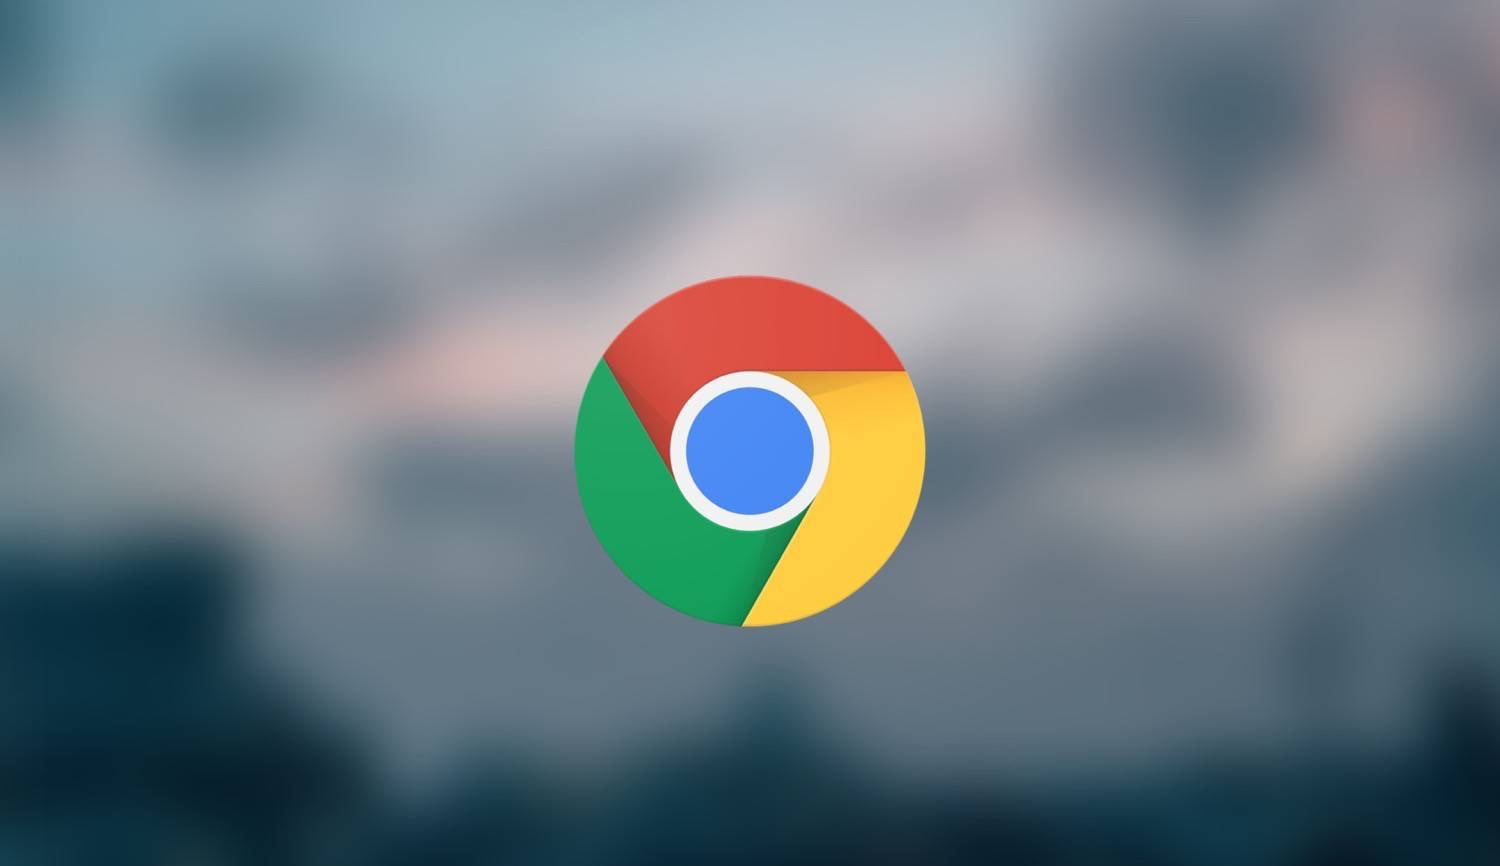 Googlechrome 2